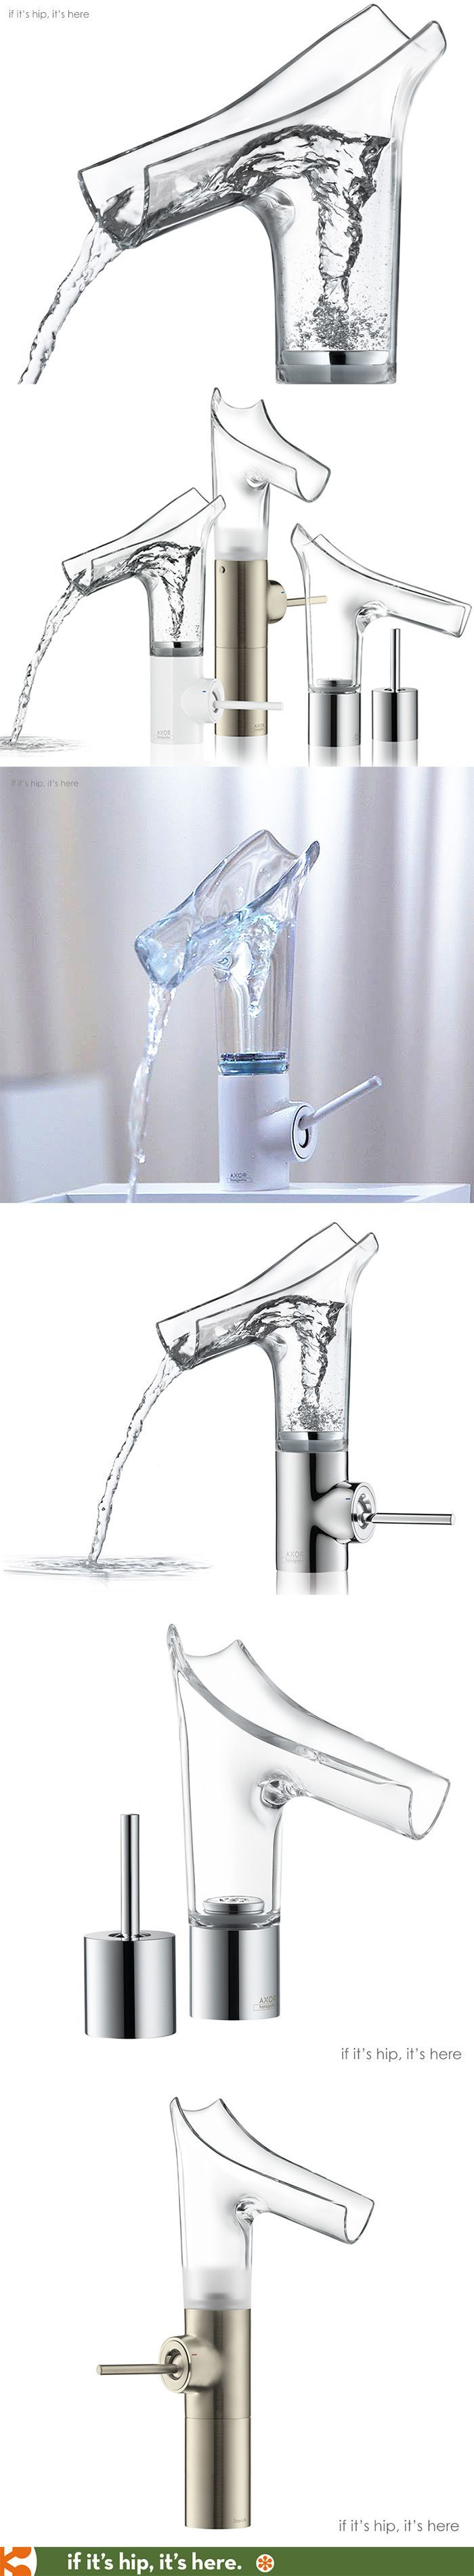 Transparent water faucets unveiled at Salon del Mobile. So cool. Link has more info.: